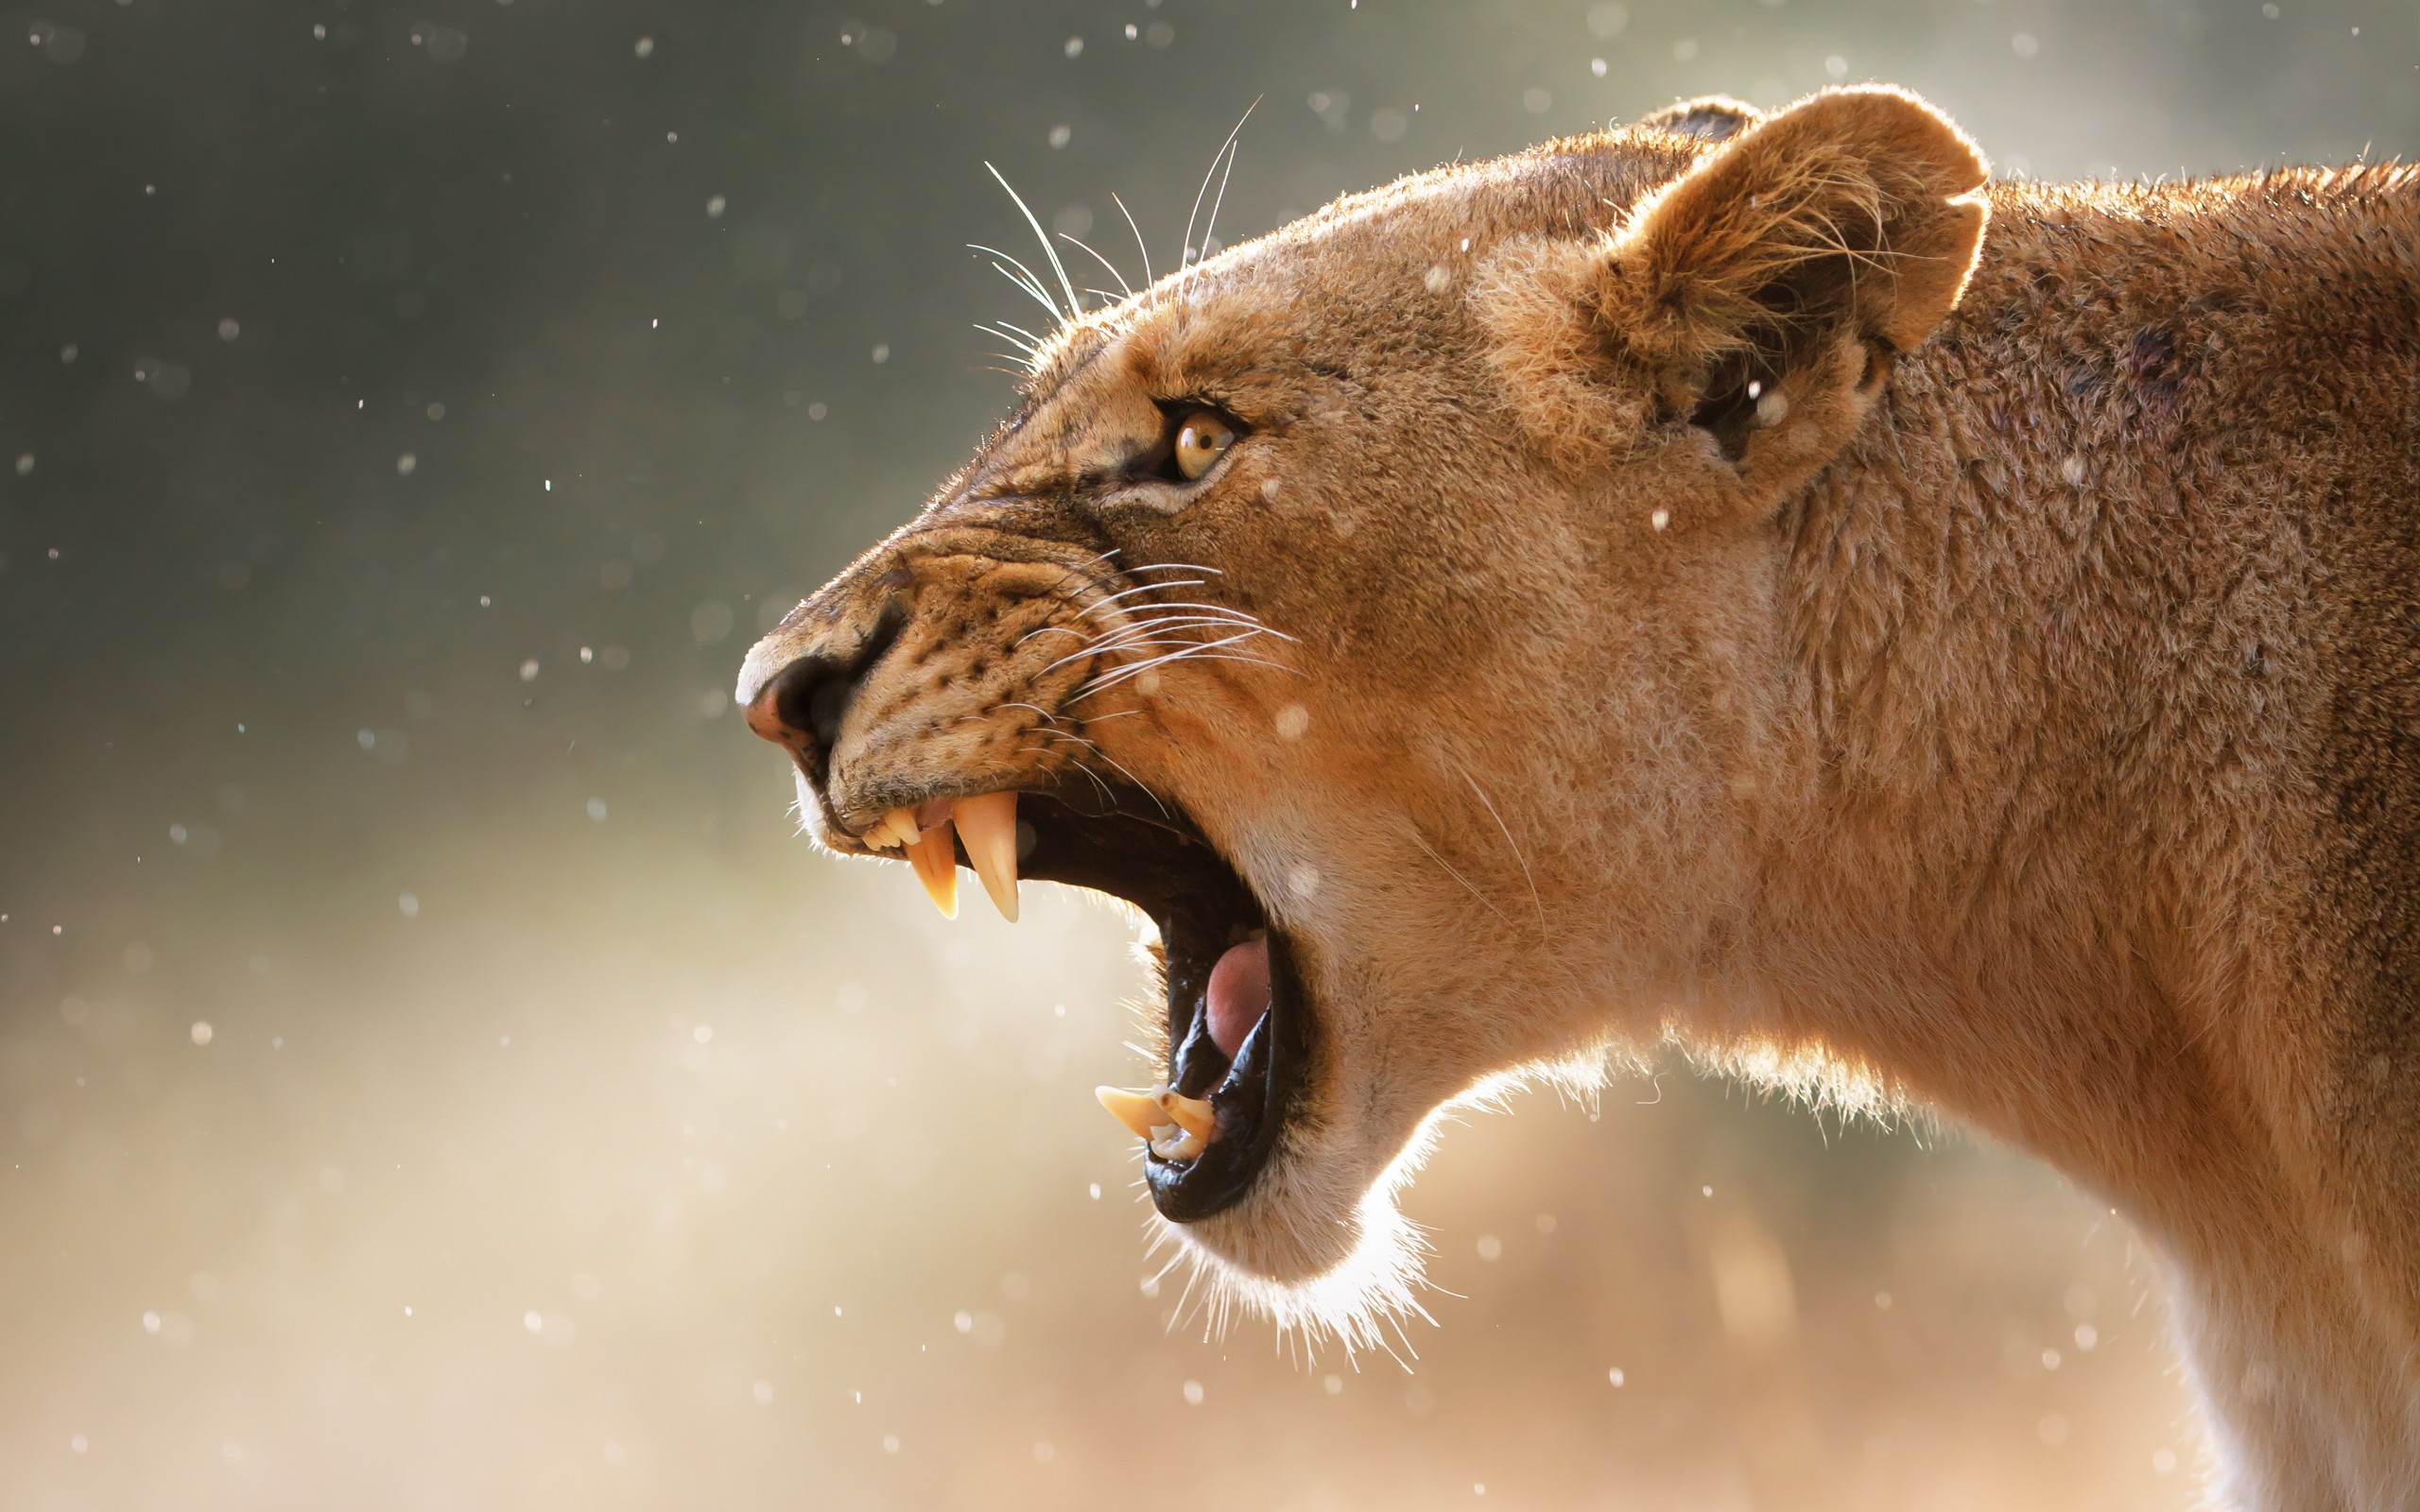 Angry Lioness Wallpaper 2560x1600